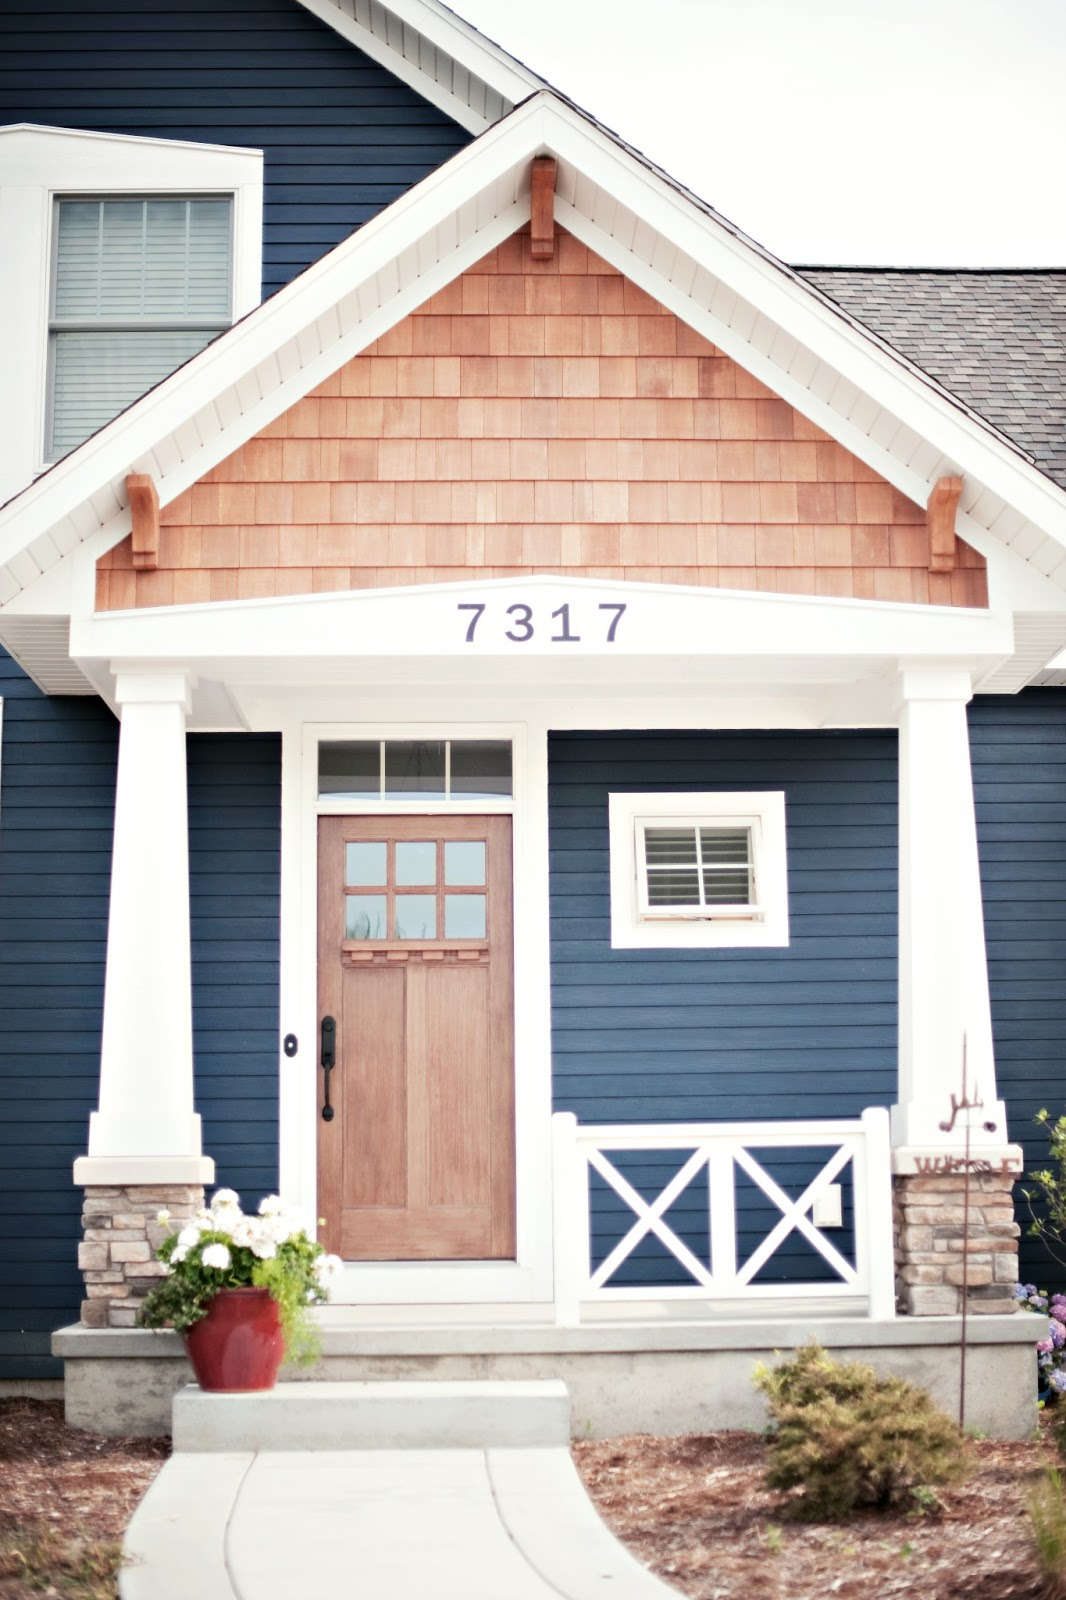 Lisa mende design best navy blue paint colors 8 of my favs for Exterior painting